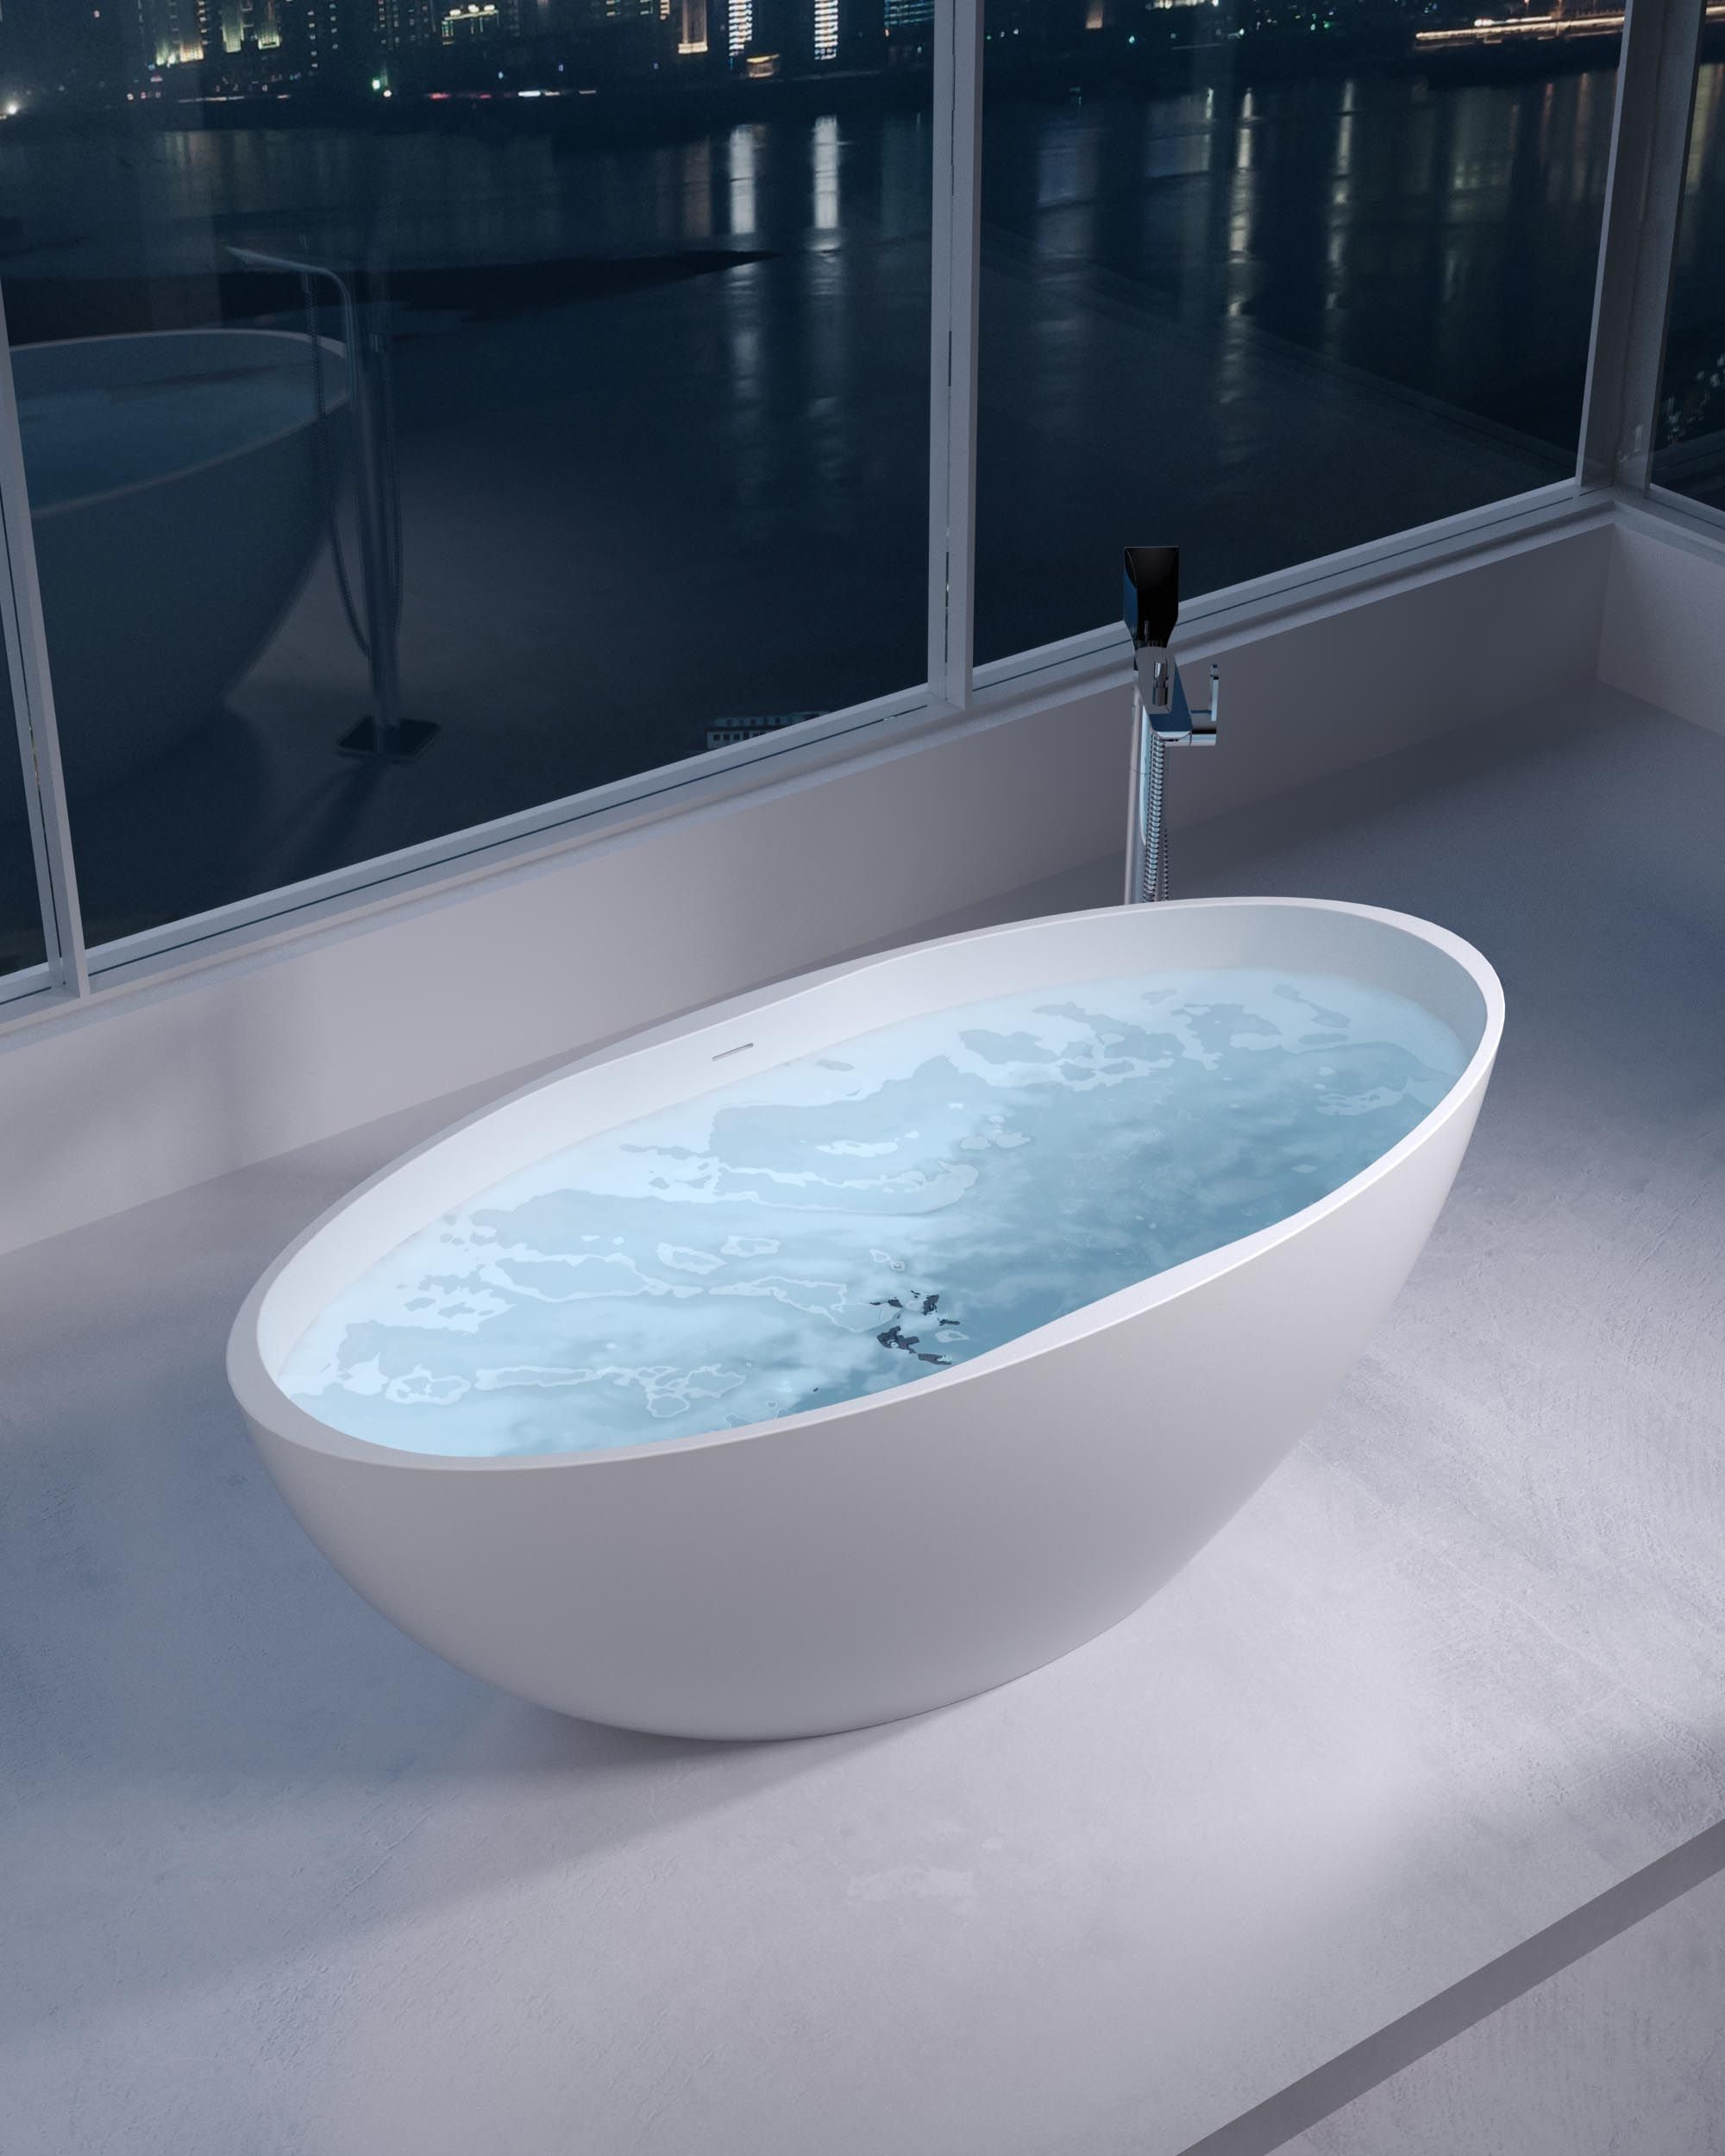 Adoro Freestanding Bathtub Florence Oval in solid surface | Adoro ...